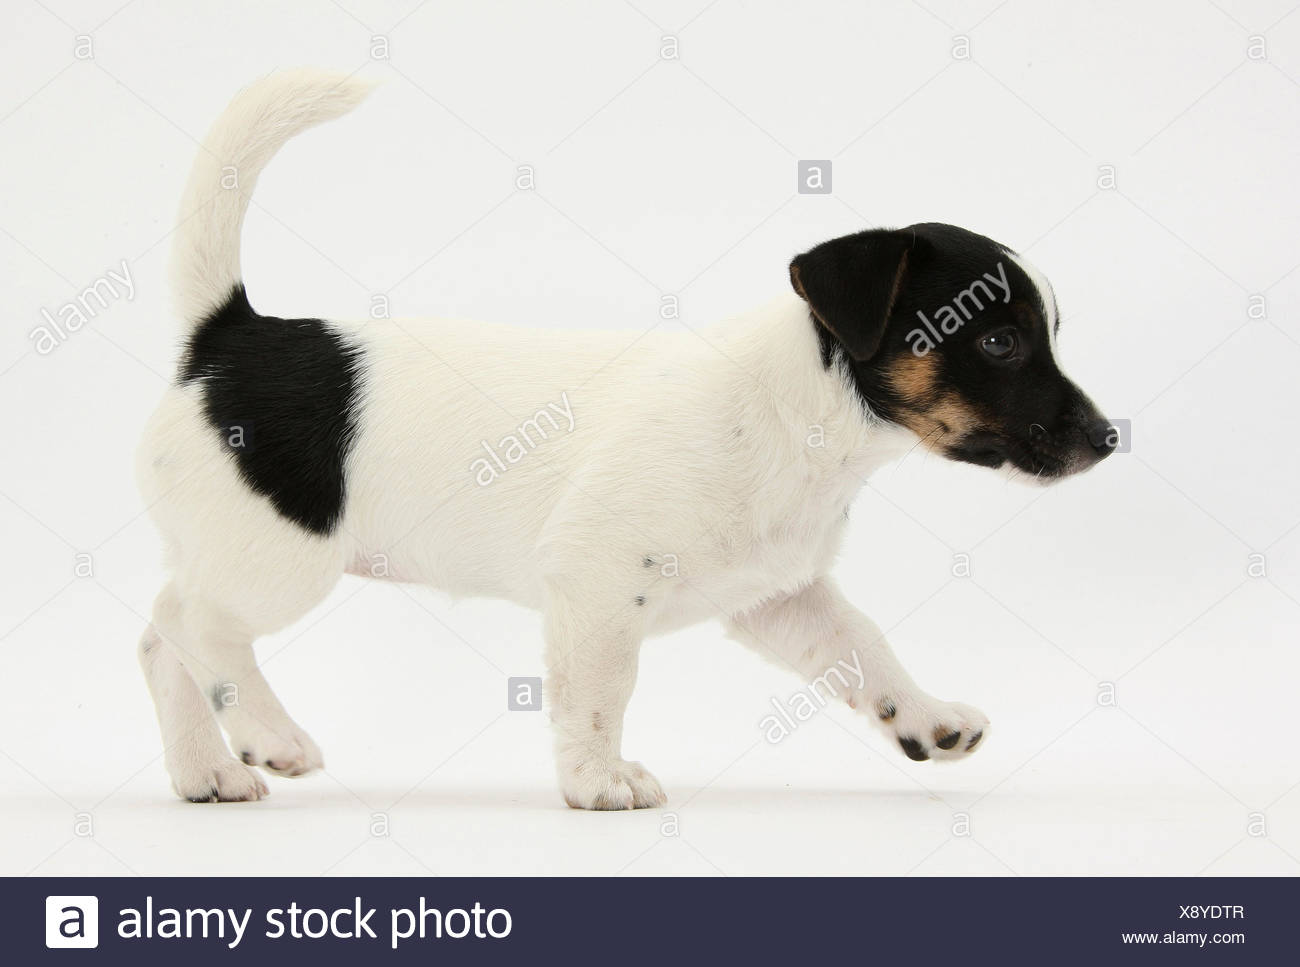 Smooth coated black and white, Jack Russell Terrier puppy, aged 9 weeks, walking. - Stock Image